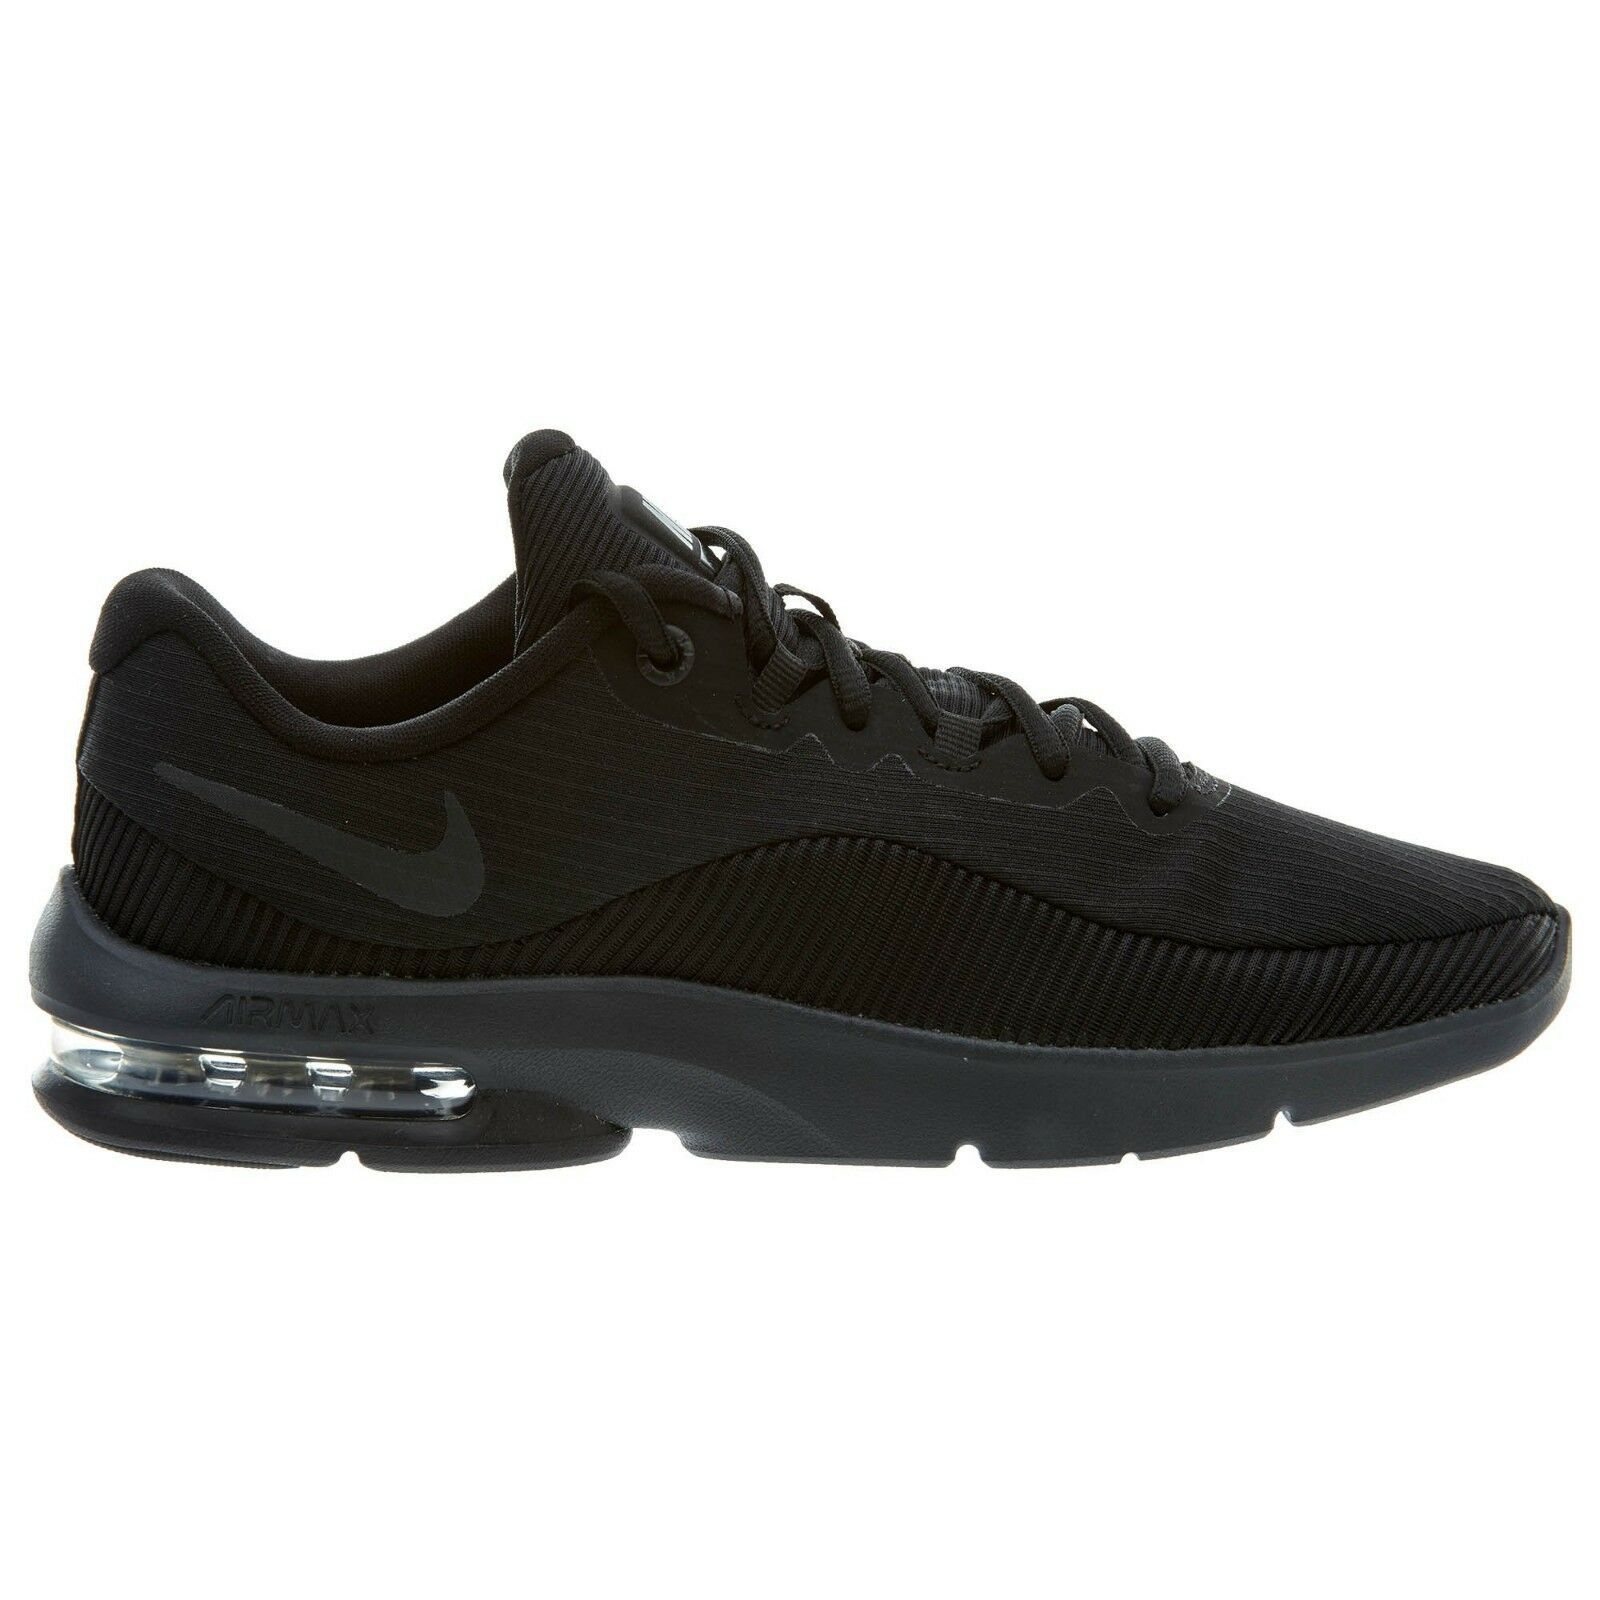 Nike Men's AIR MAX ADVANTAGE 2 Running shoes Black Anthracite AA7396-002 c